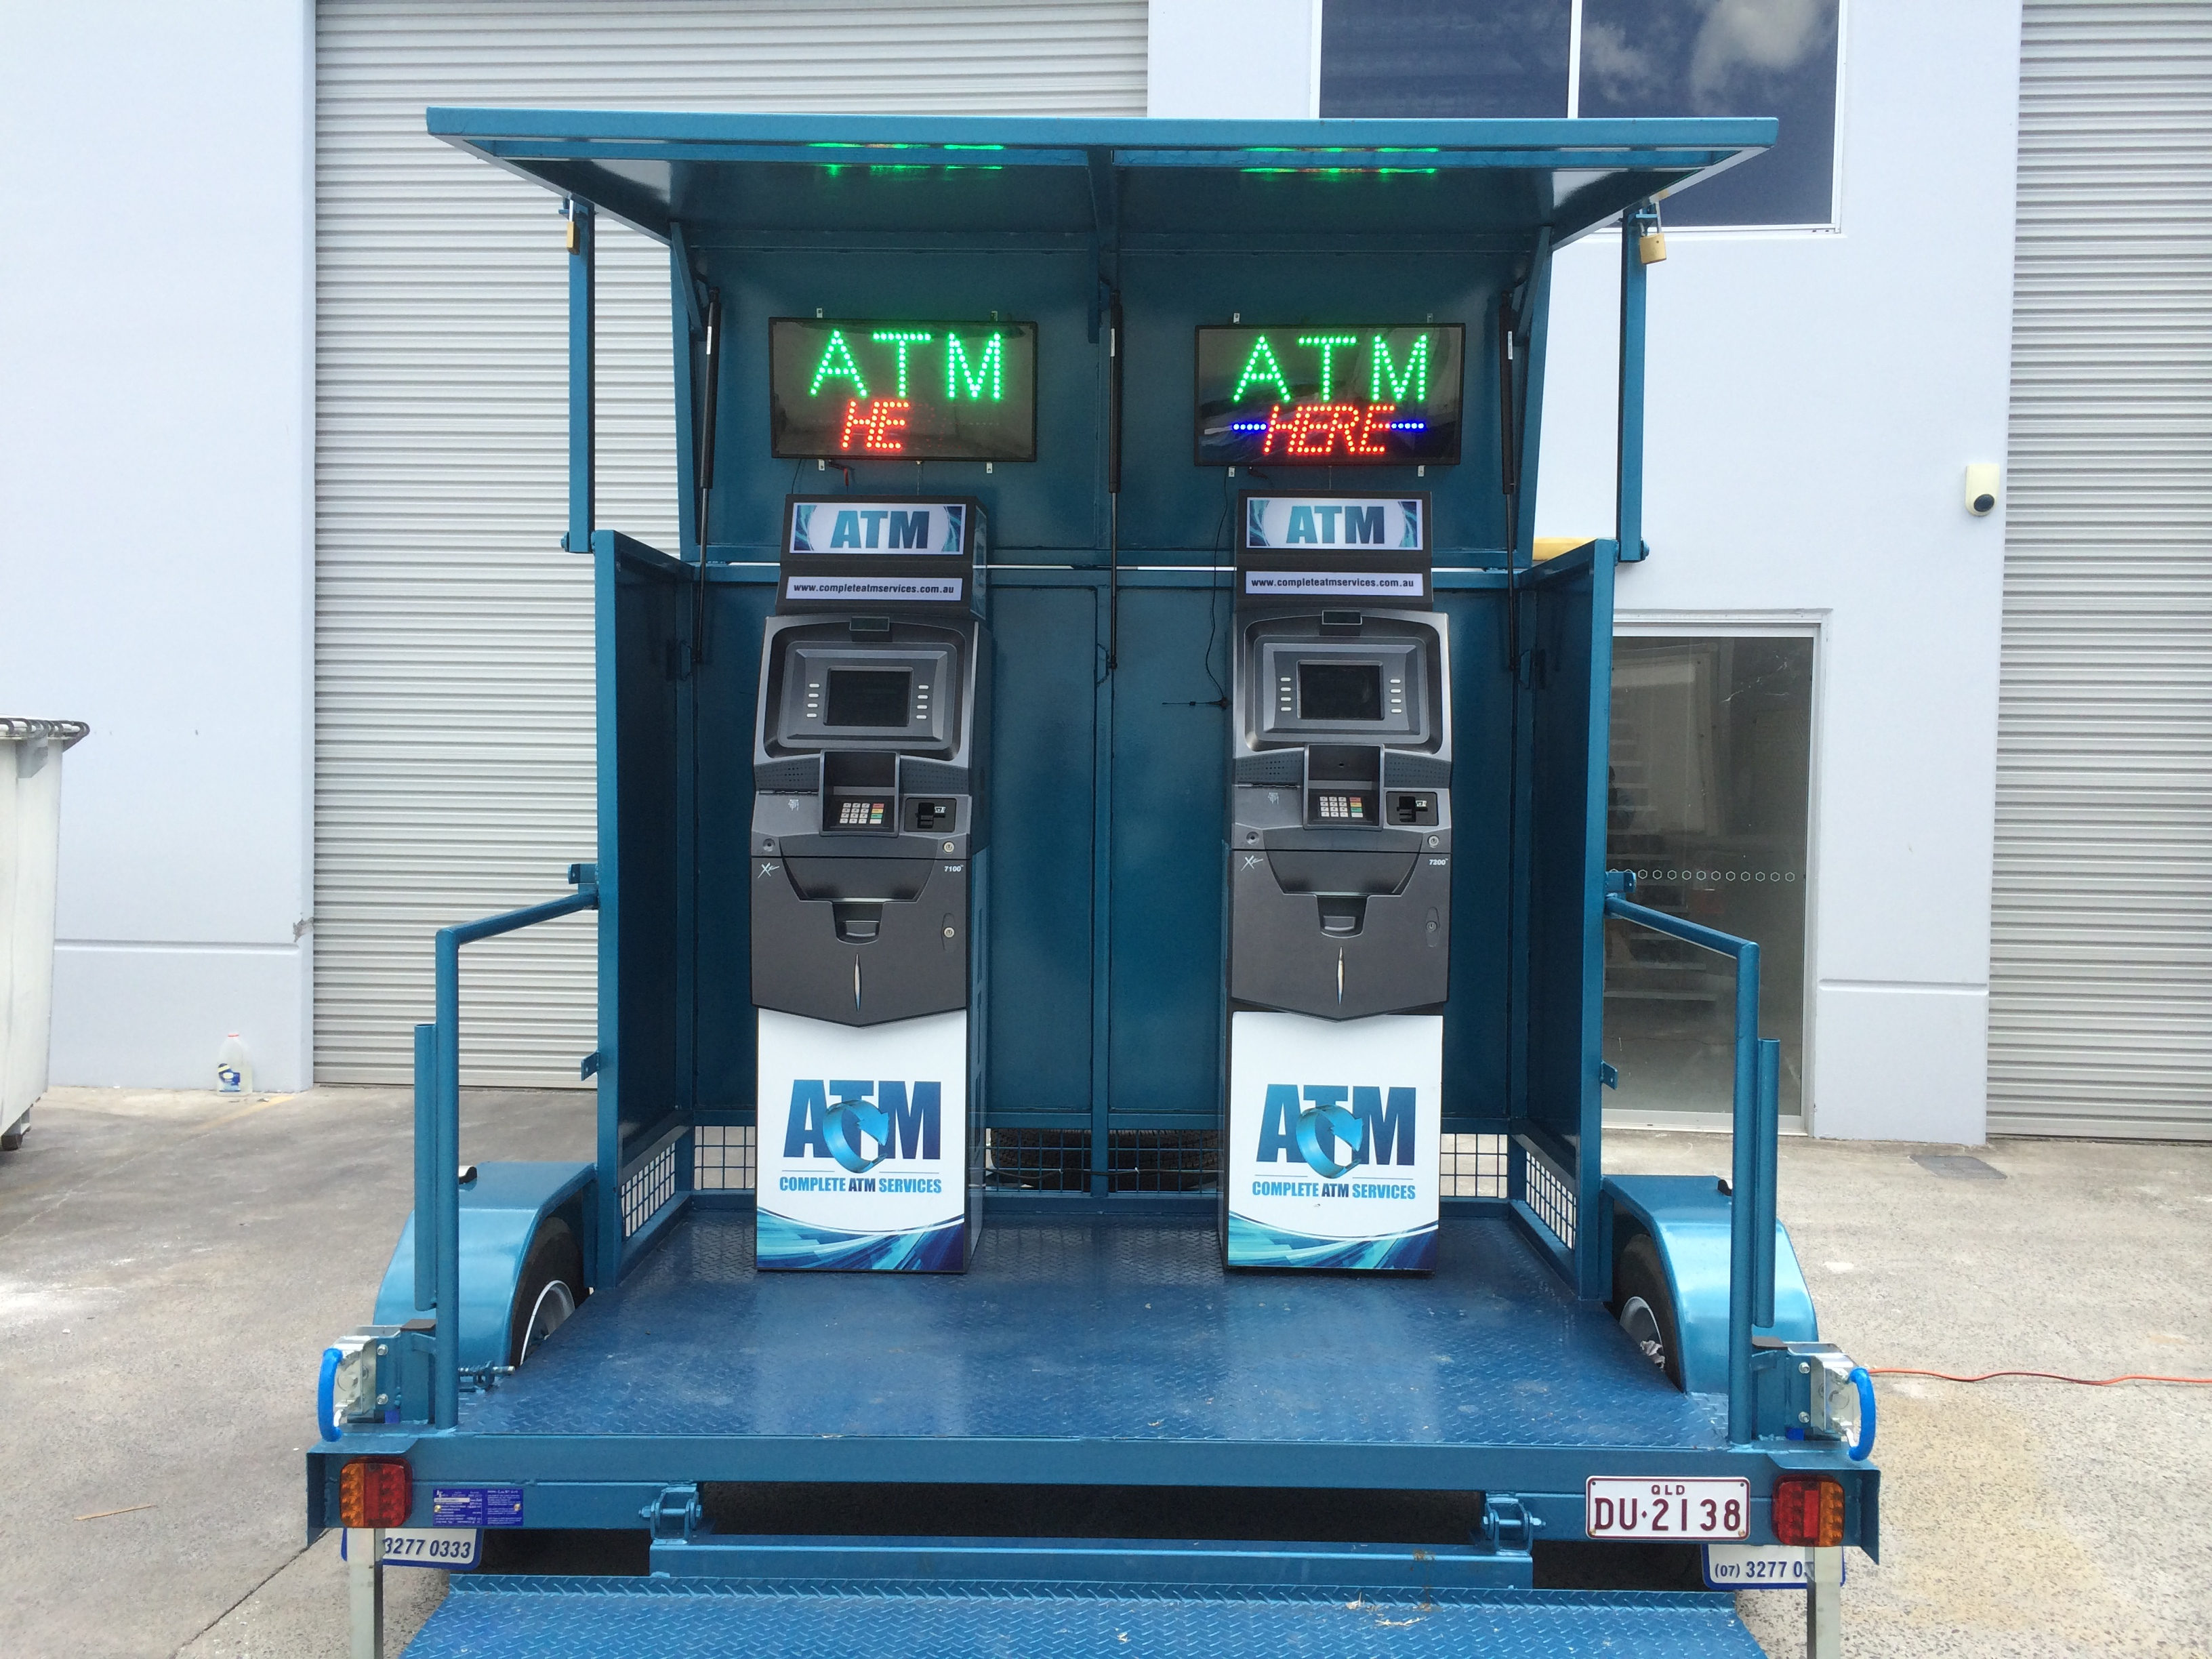 Blue ATM Trailor with 2 ATMs